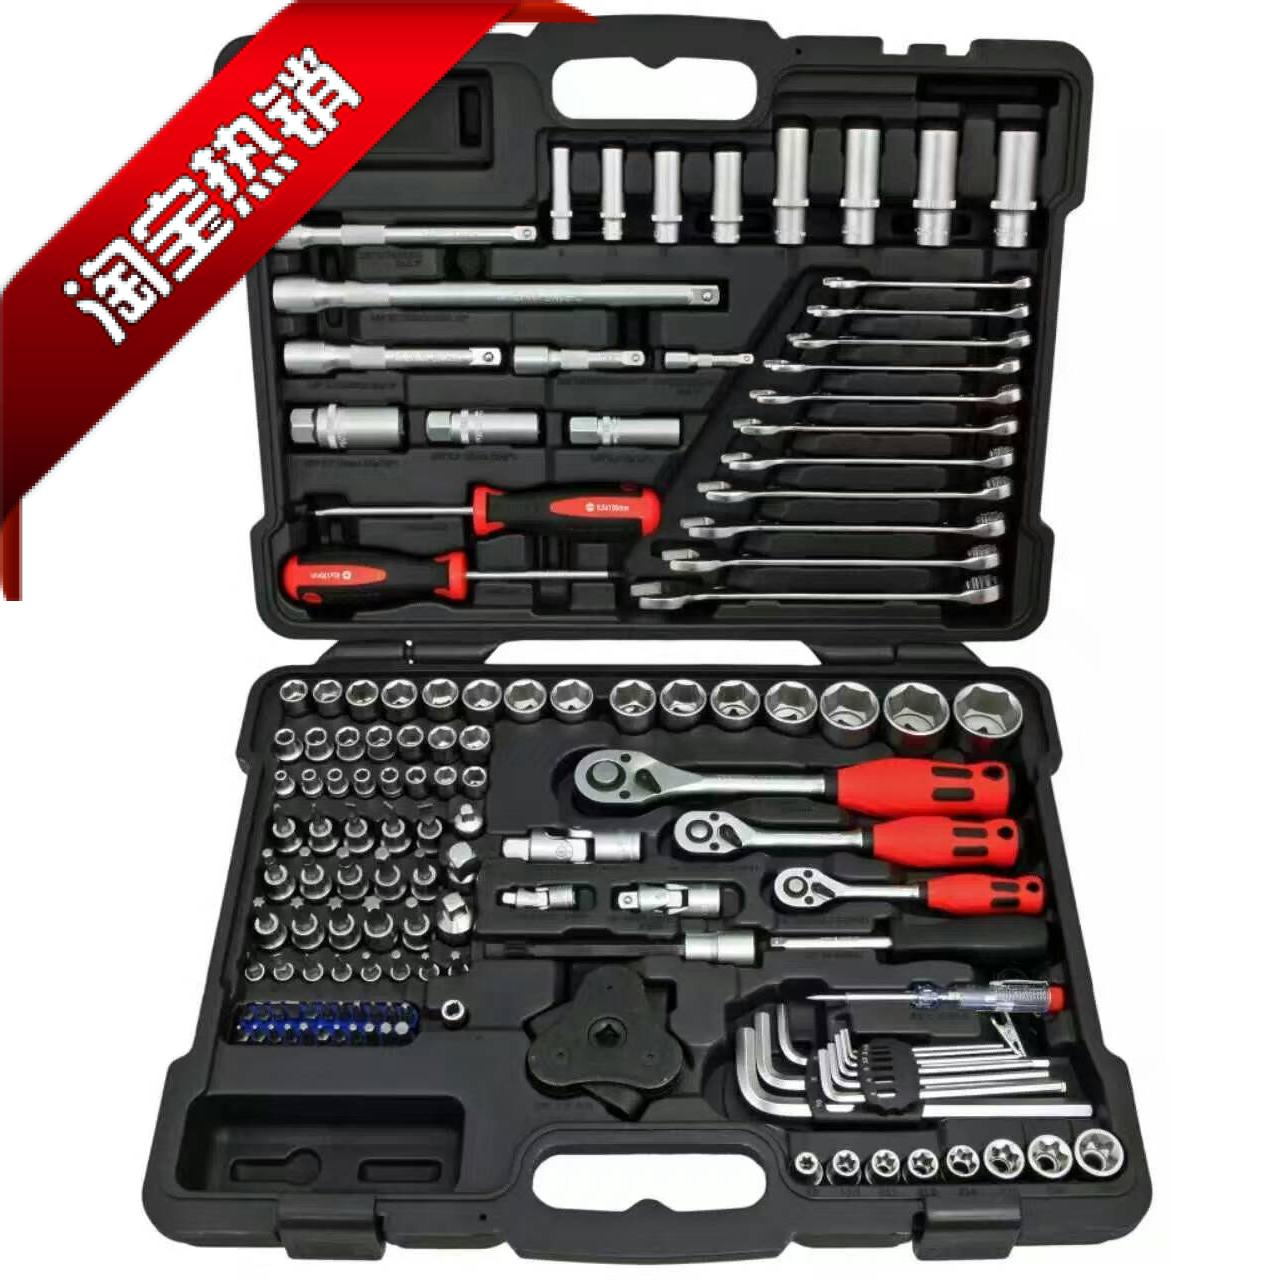 Professional 121 pieces of 150 pieces of auto repair tool set sleeve wrench combination of automobile repair kit